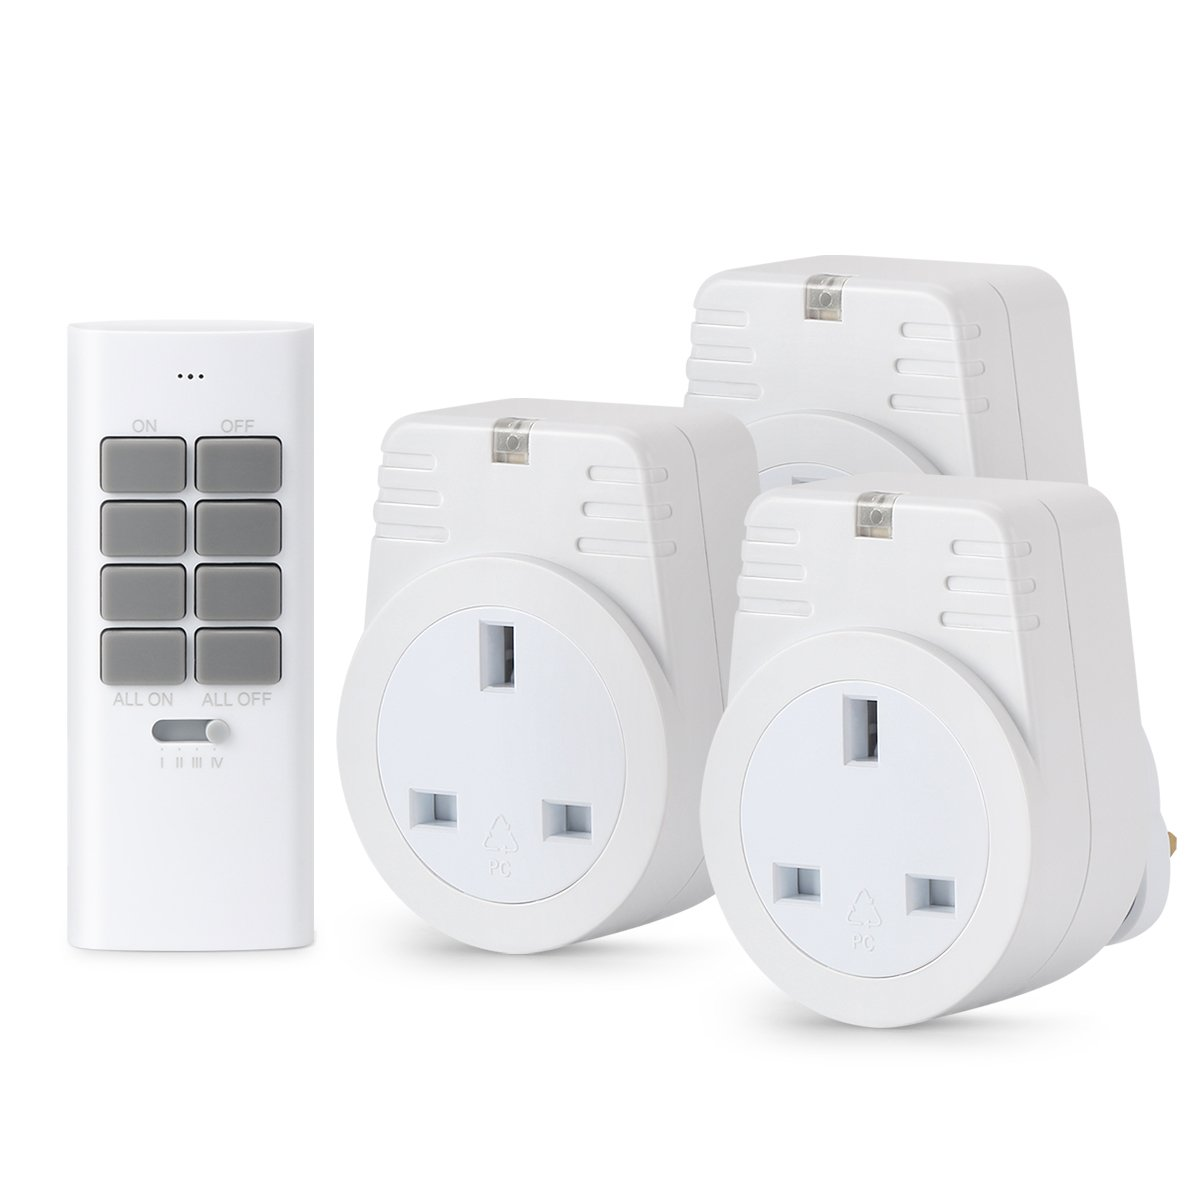 Household Appliances Operating Range Up To 30 Meter //100 Foot Lunvon 12 Programmable Channels 1000 Watt 3 Outlets 1 Remote Wireless Remote Control Sockets Electrical Plug Outlet Switch Light White